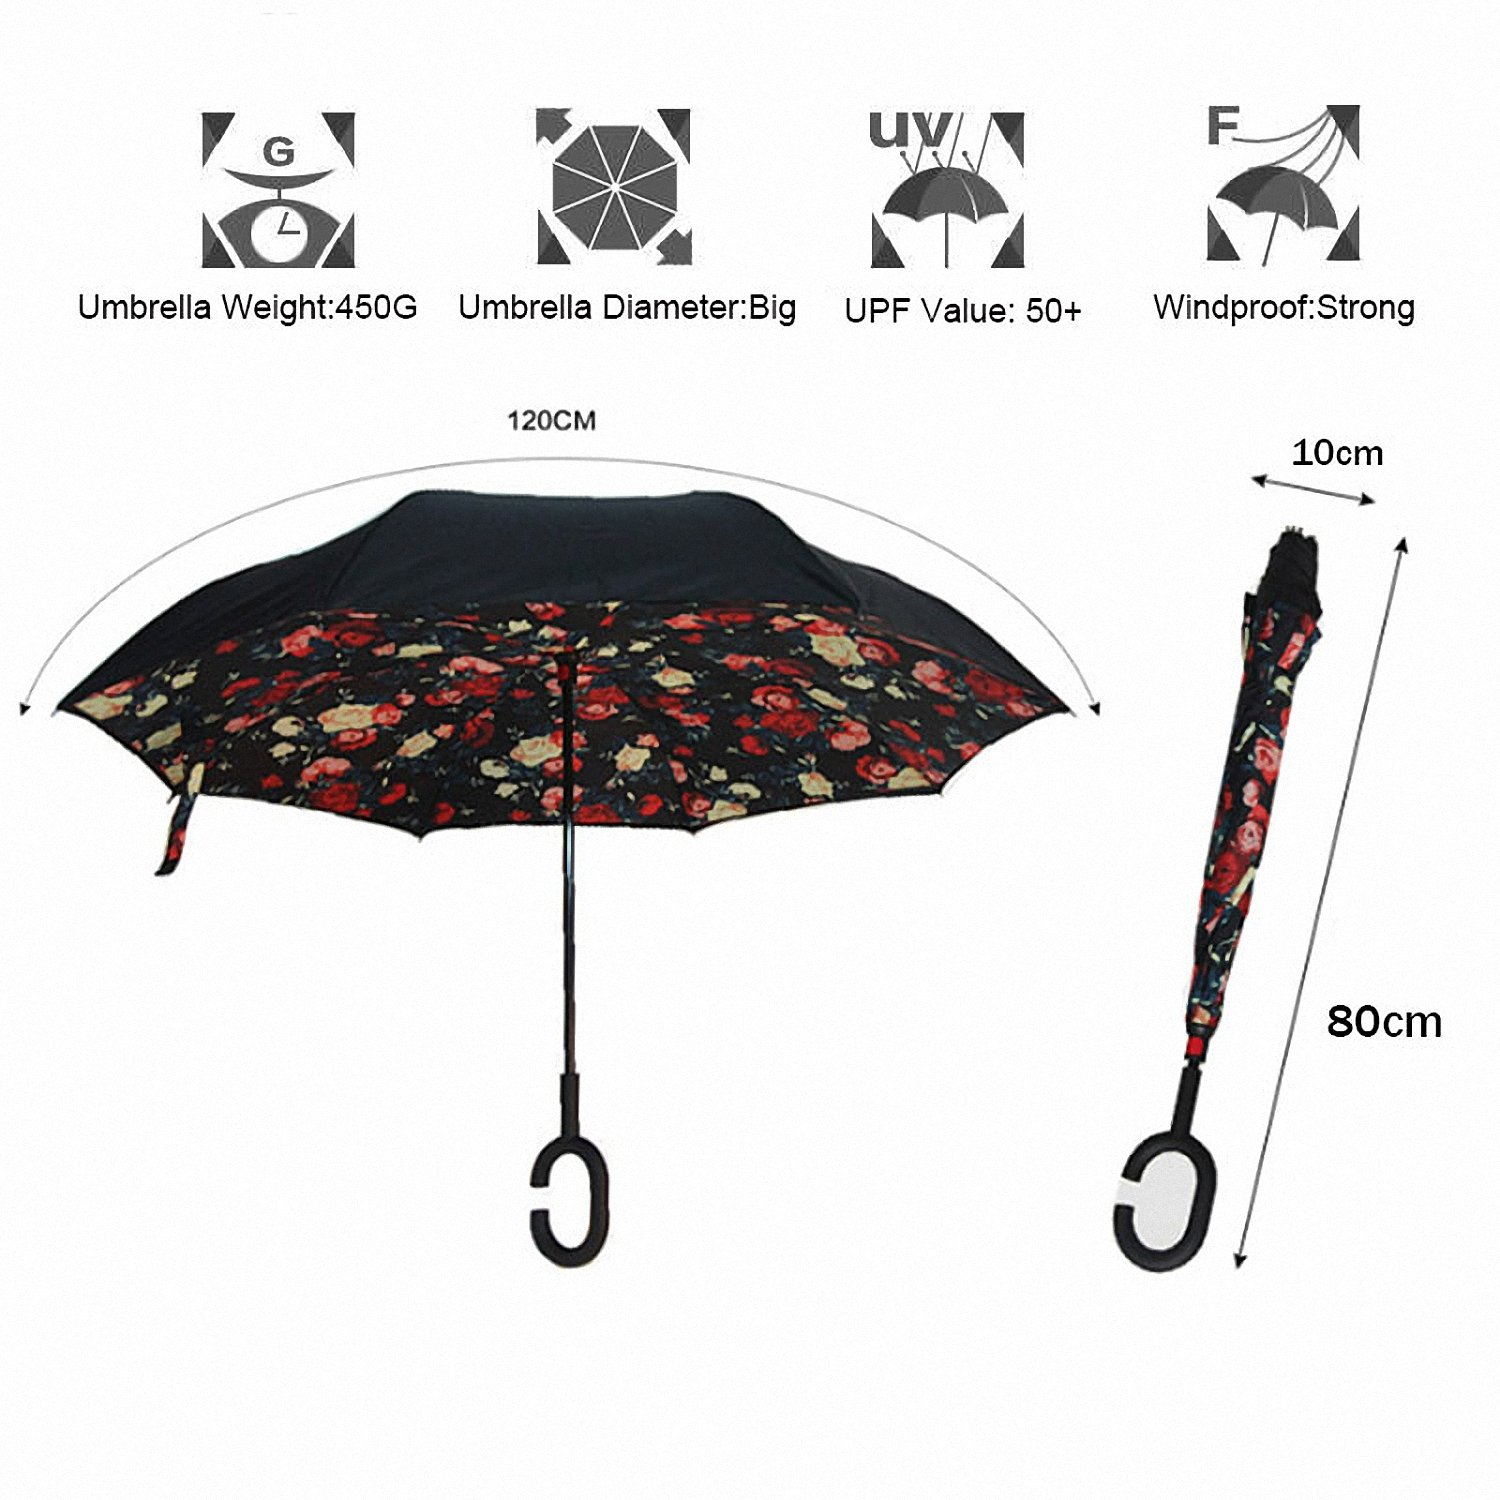 Amazon.com : Baolustre Folding Reverse Umbrella Double Layer Inverted Windproof Rain Car Umbrellas For Women Green Shade : Garden & Outdoor